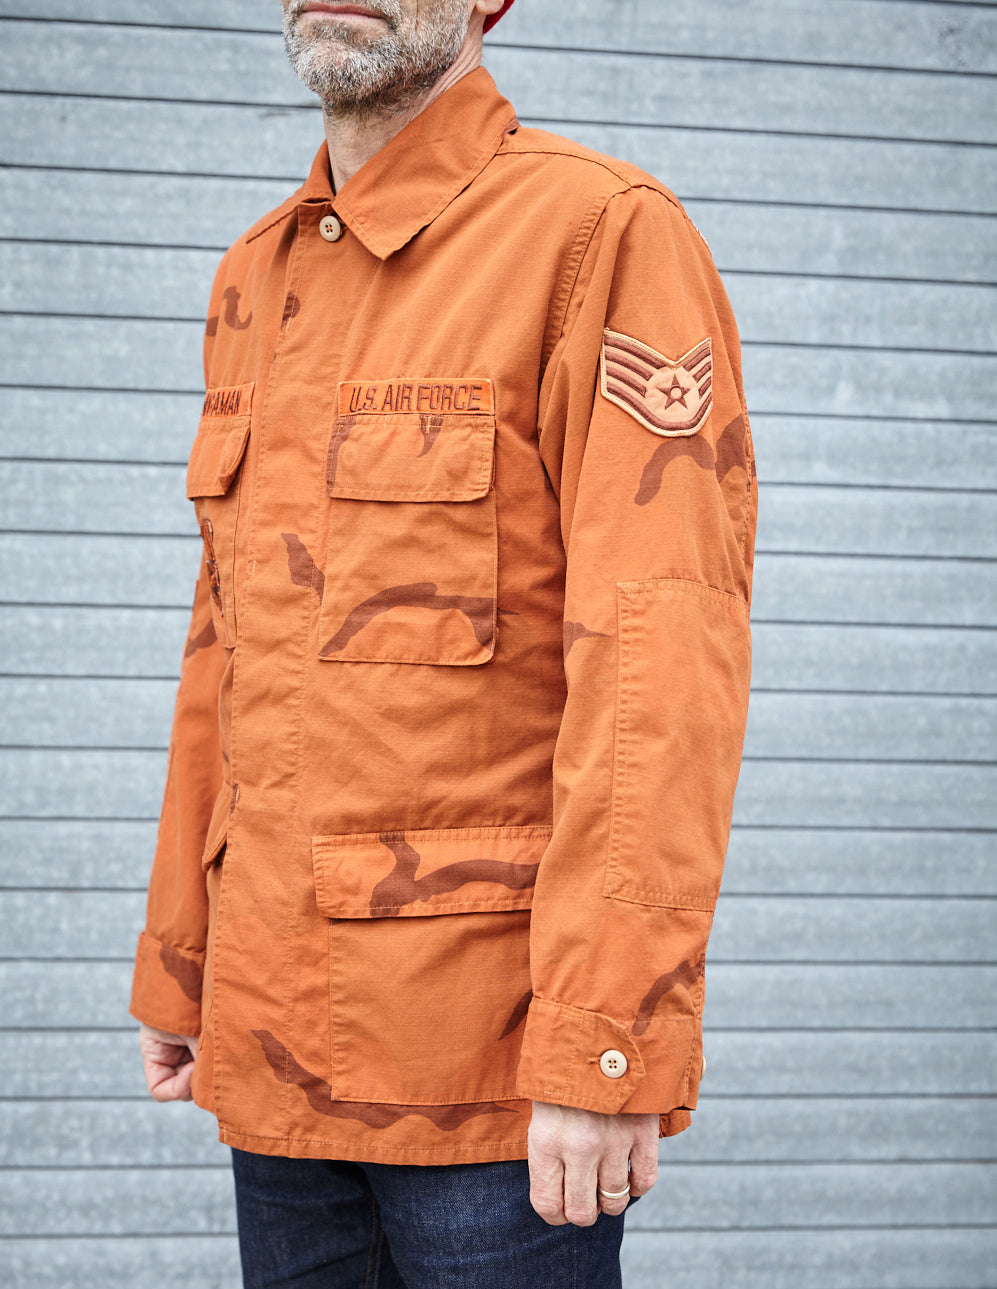 Orange Desert Camouflage Jacket